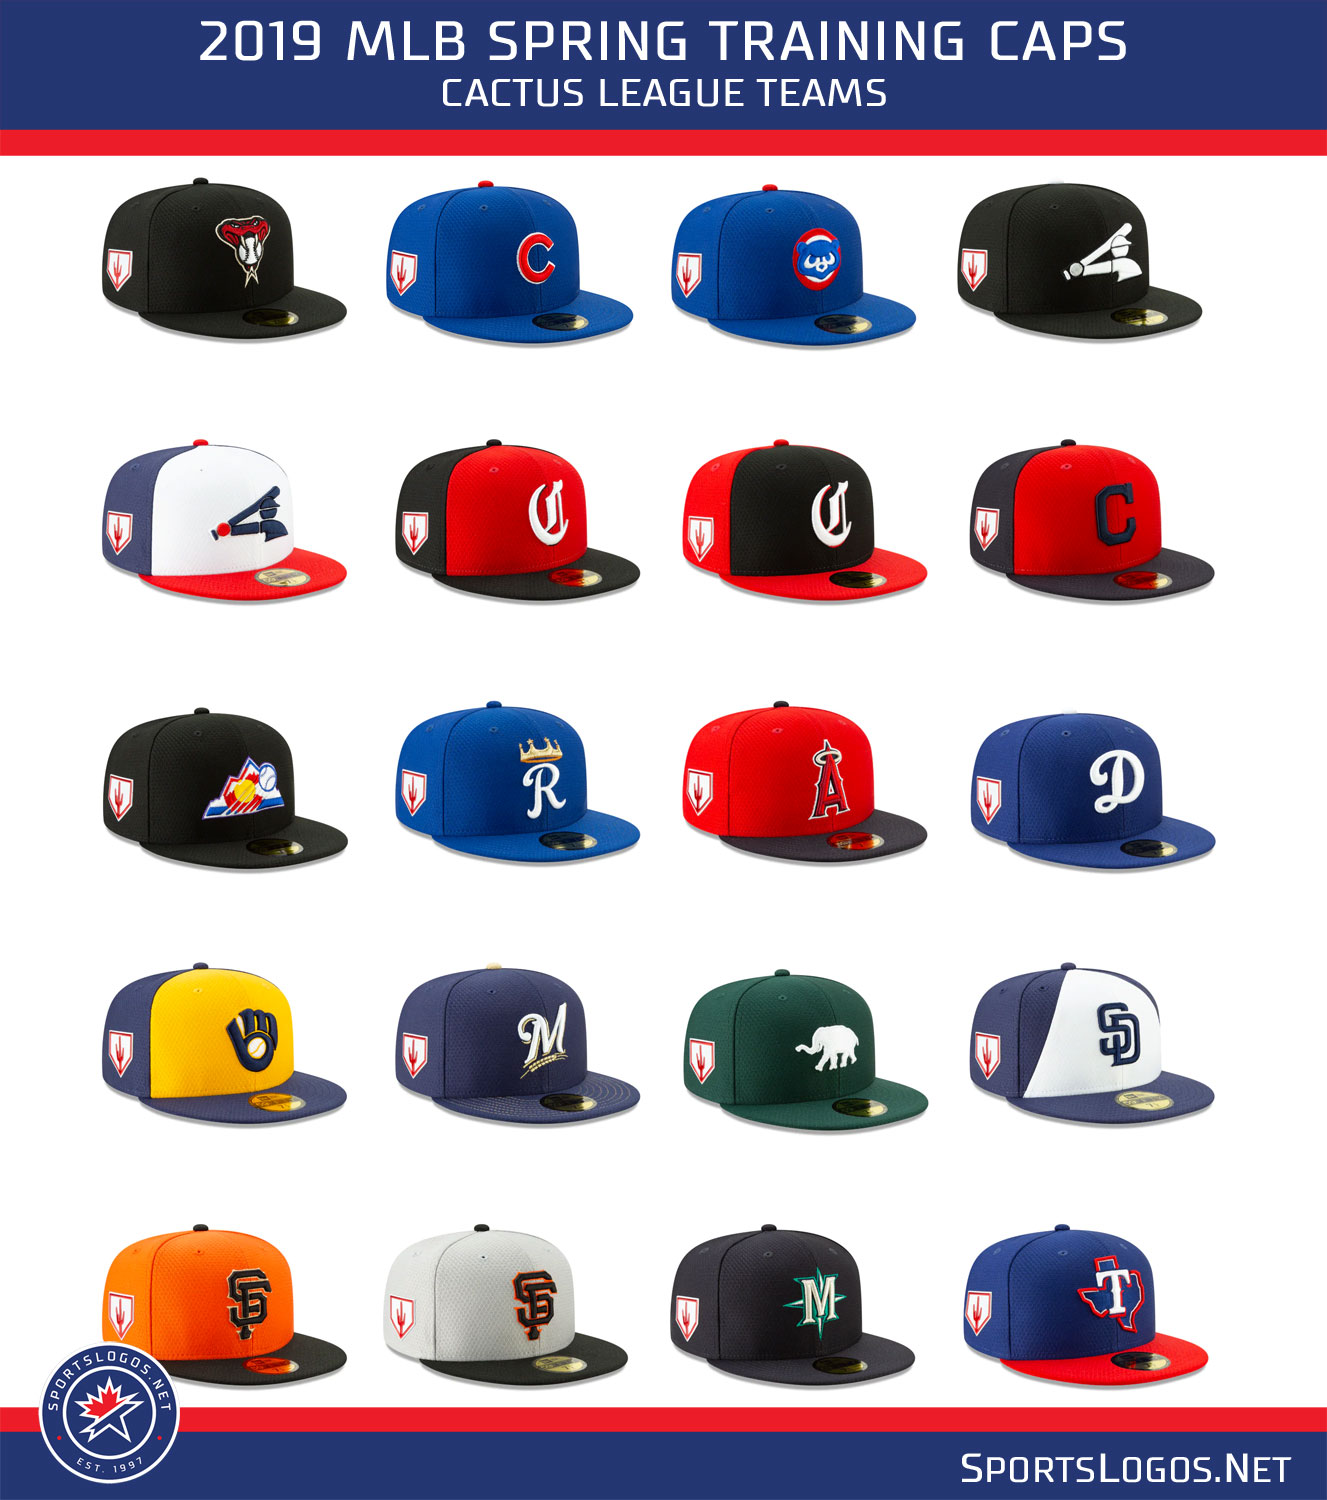 5bb60cb8f4d All of the 2019 Spring Training caps are available for purchase here